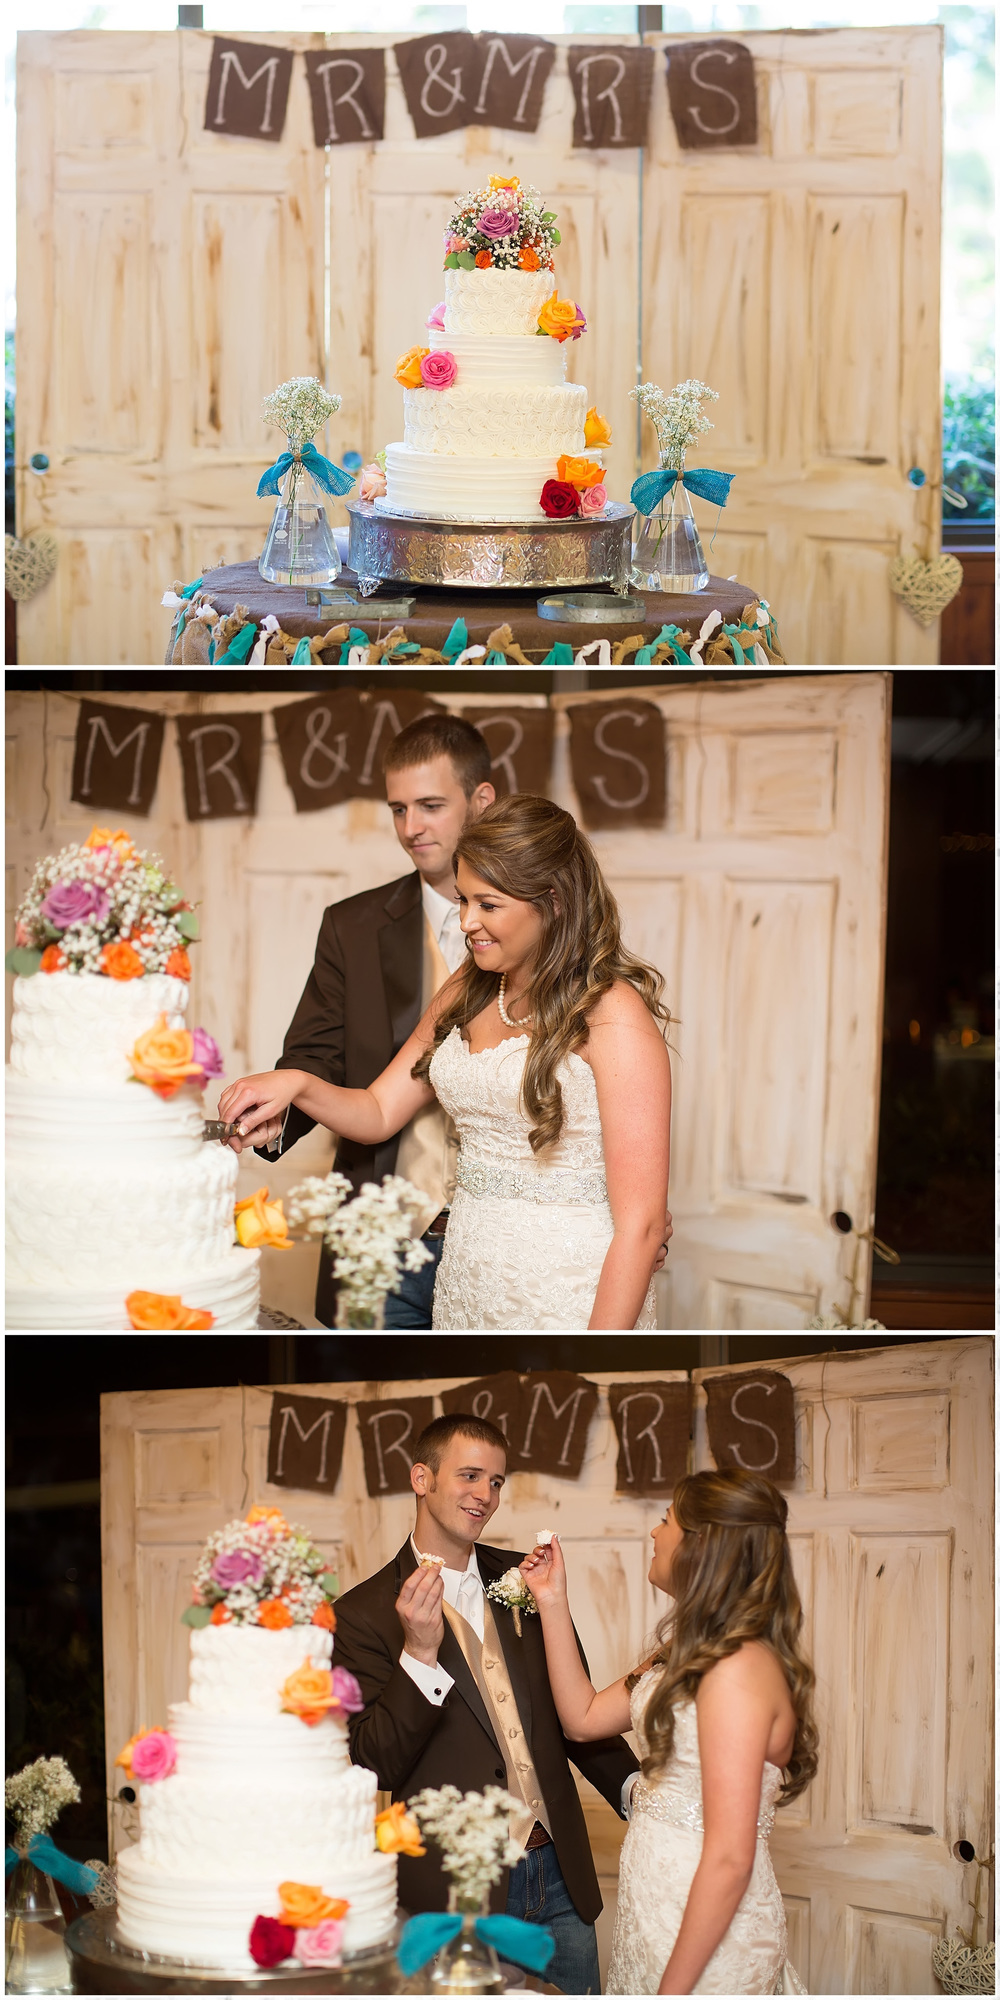 McCoy_ElKarubah_Shreveport_Wedding_21.jpg